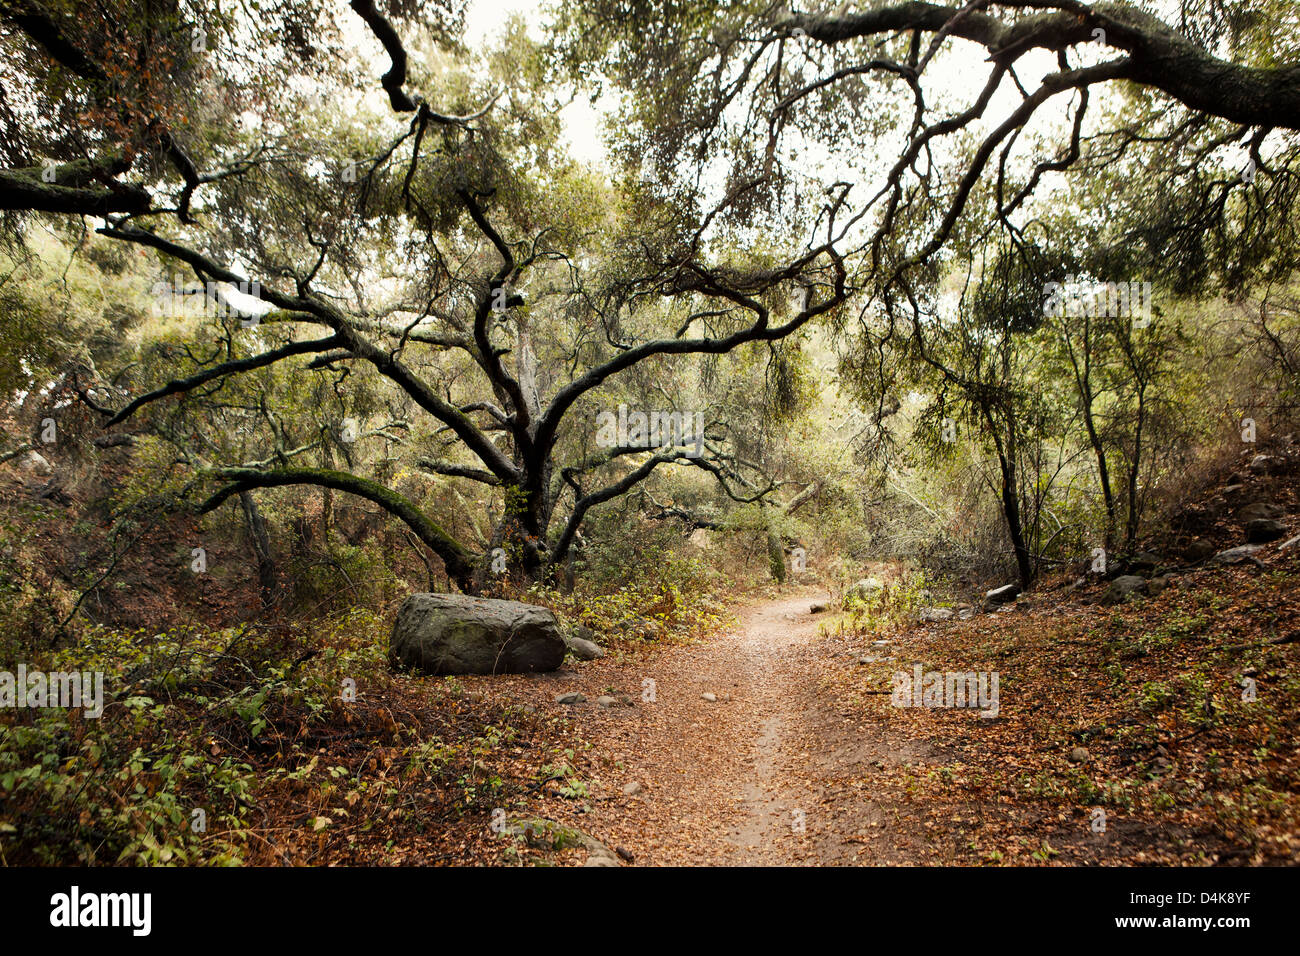 Dirt path in forest - Stock Image